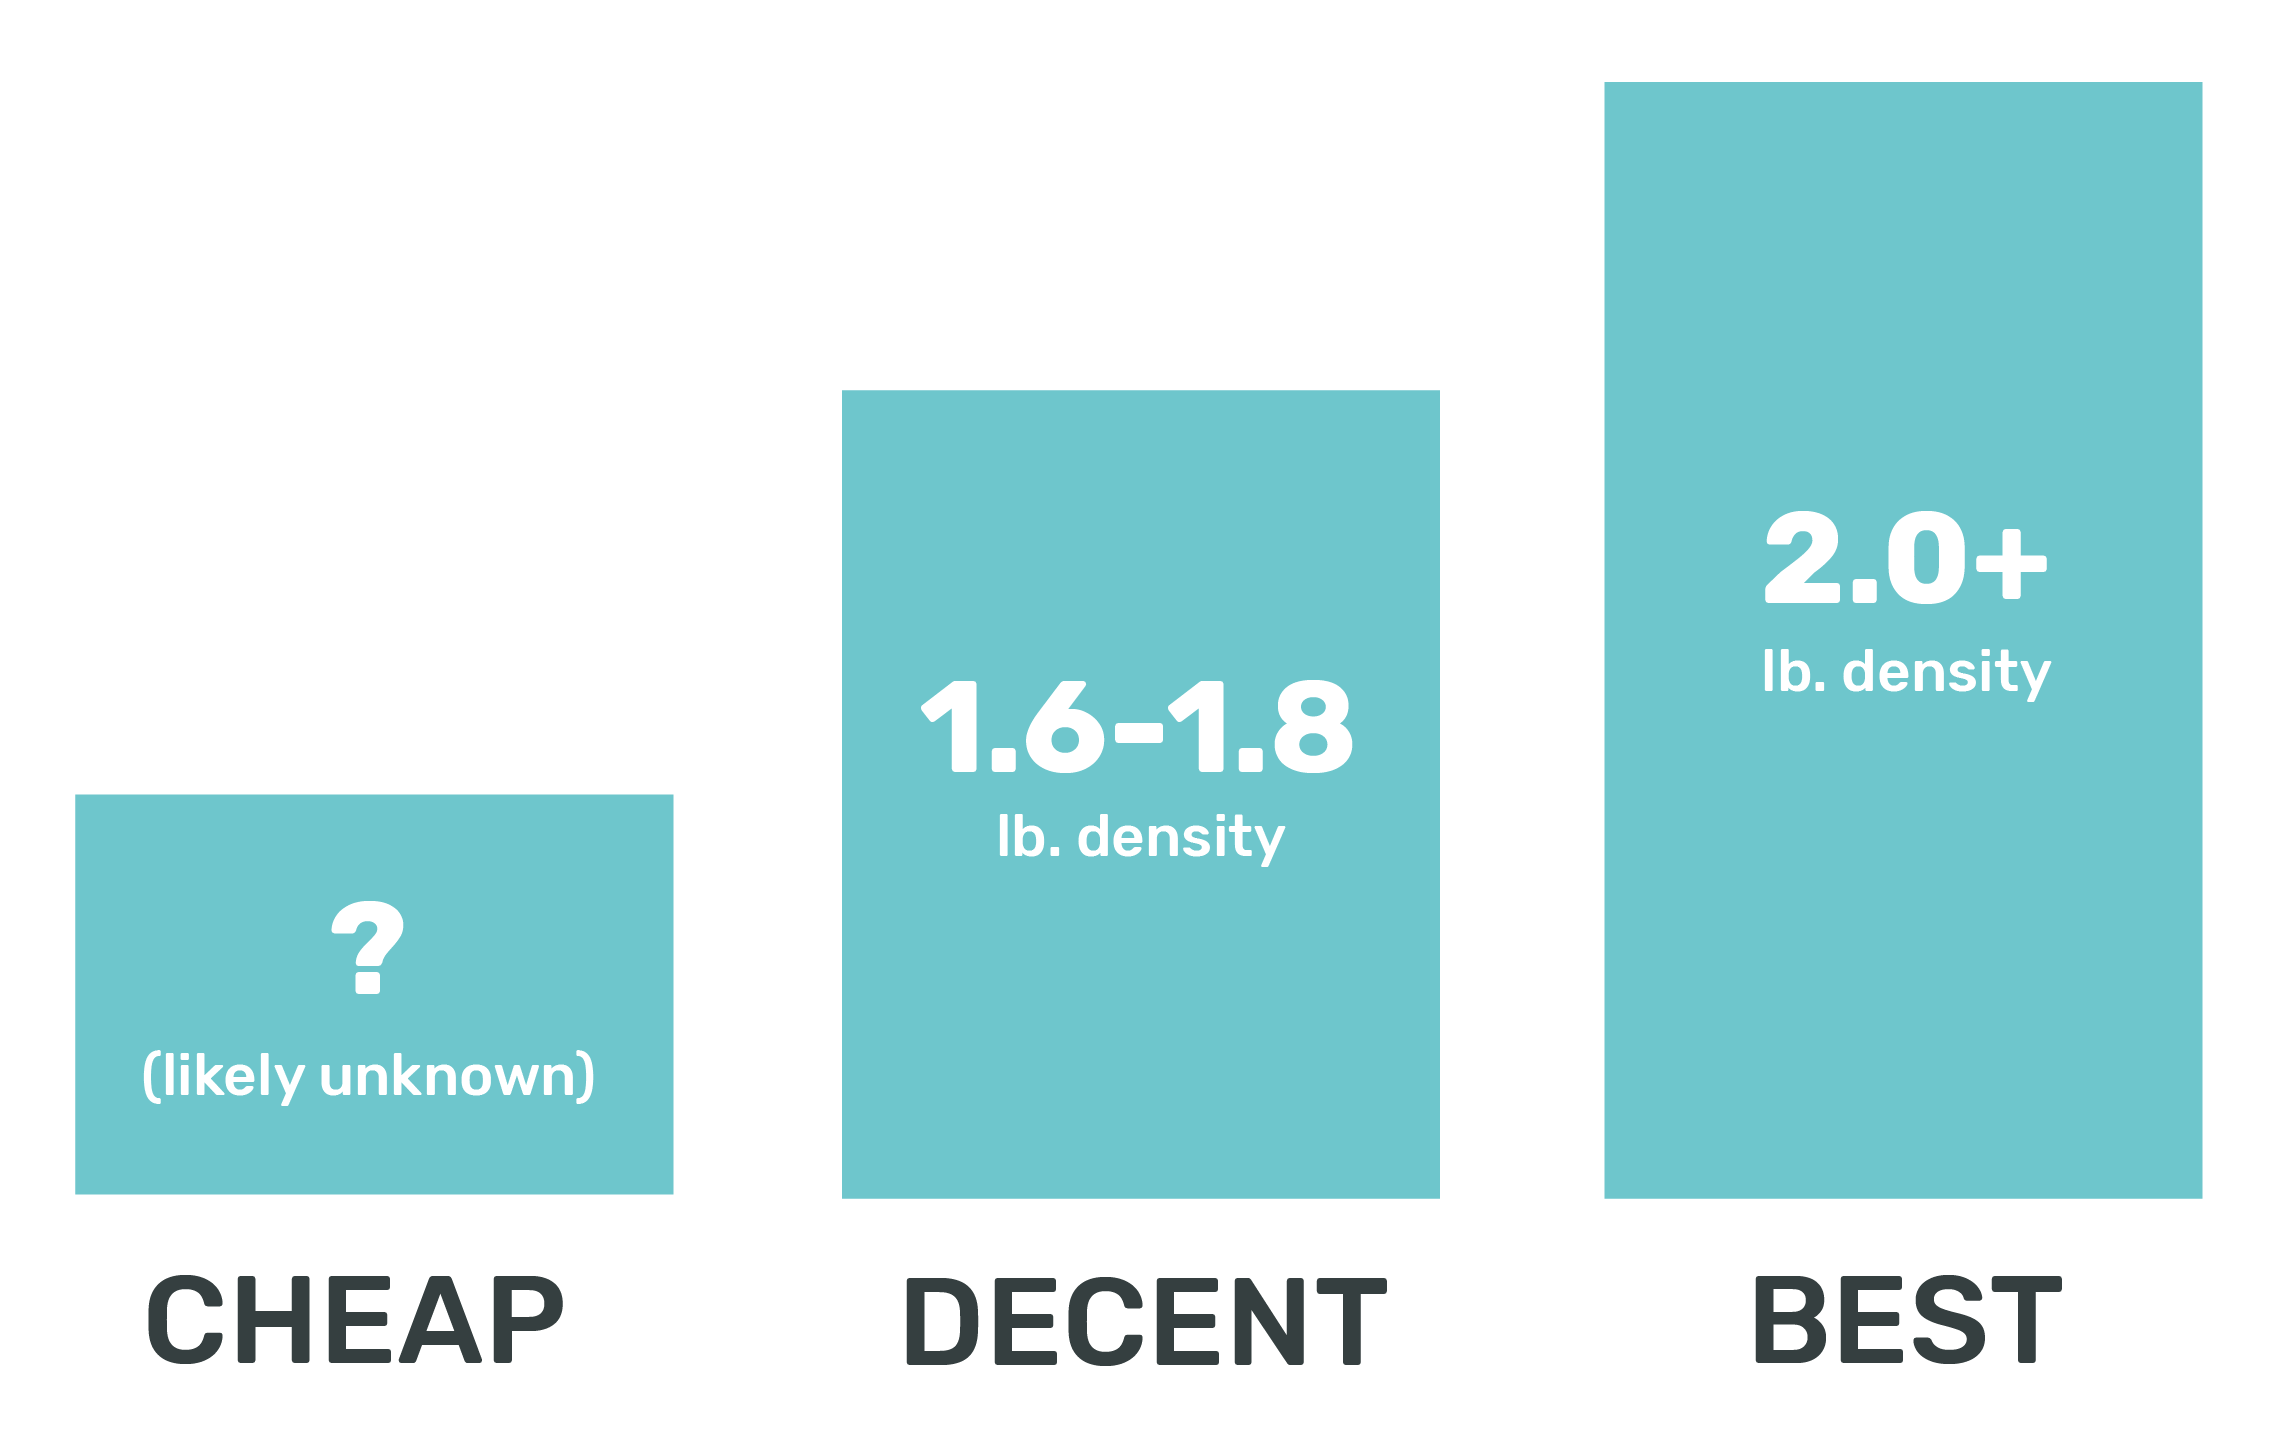 Our summary of mattress foam densities in the base layer and how they relate to quality and durability.